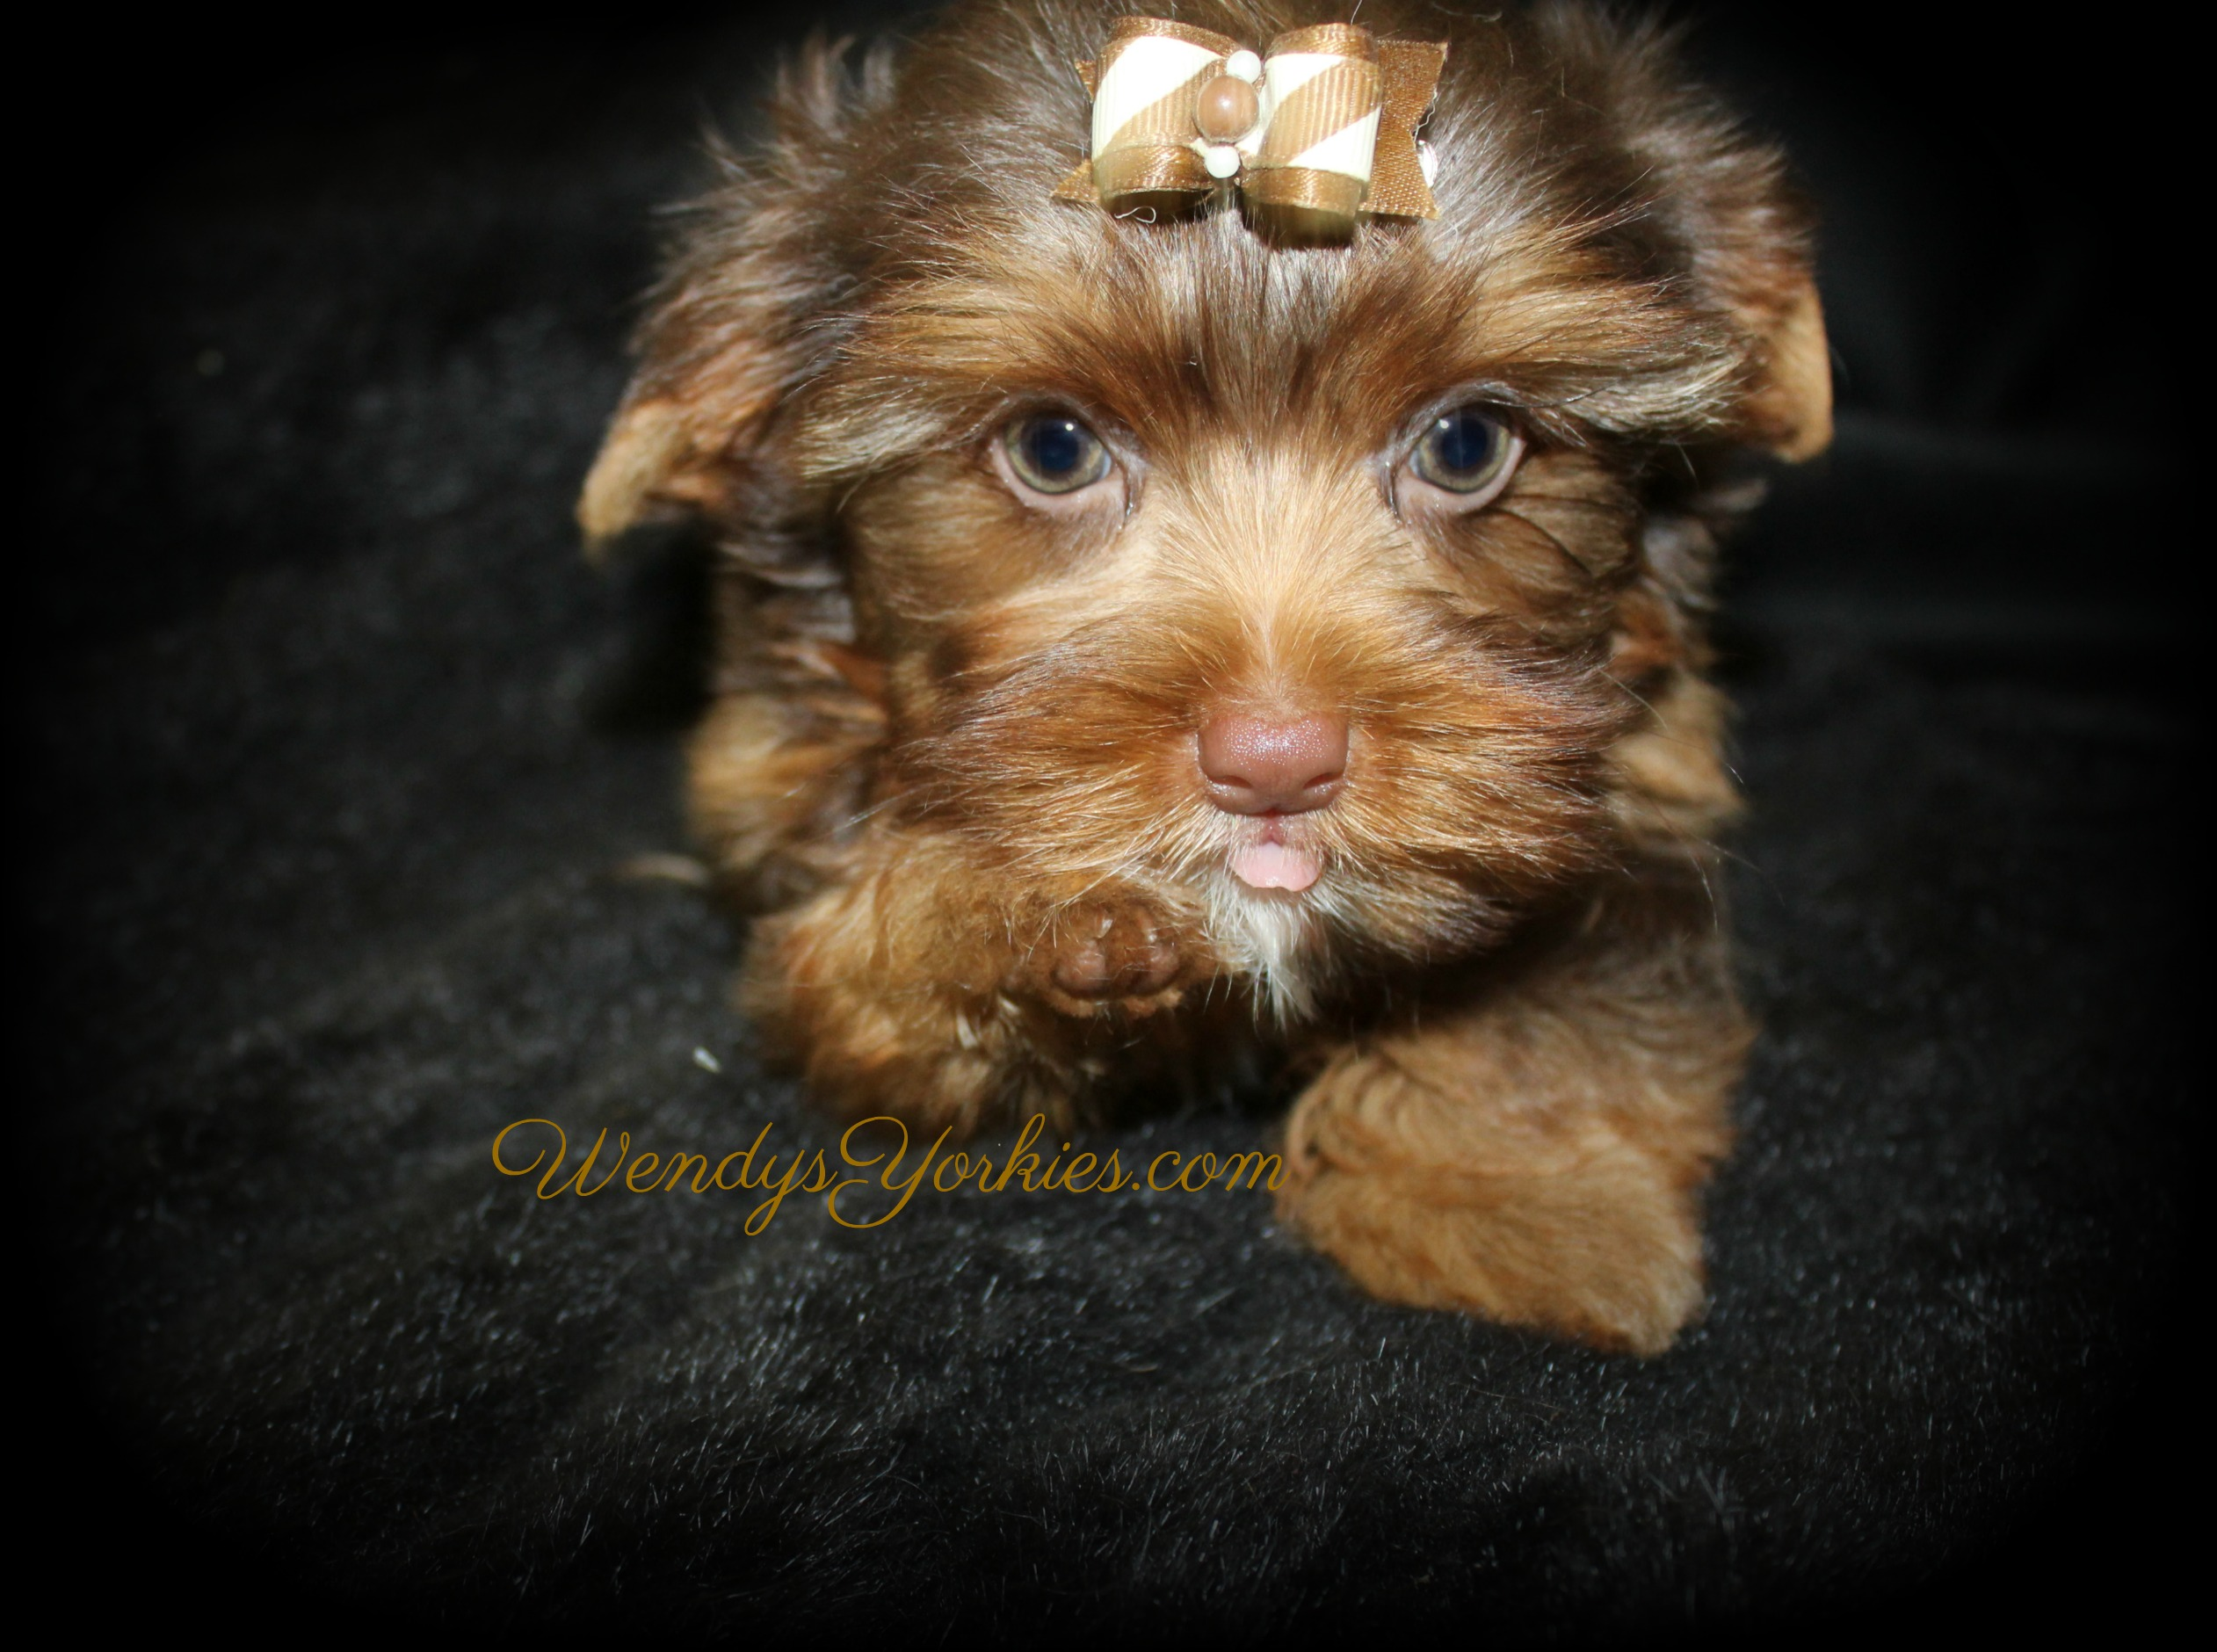 Chocolate Yorkie puppy breeder, Dixie cm1, WendysYorkies.com